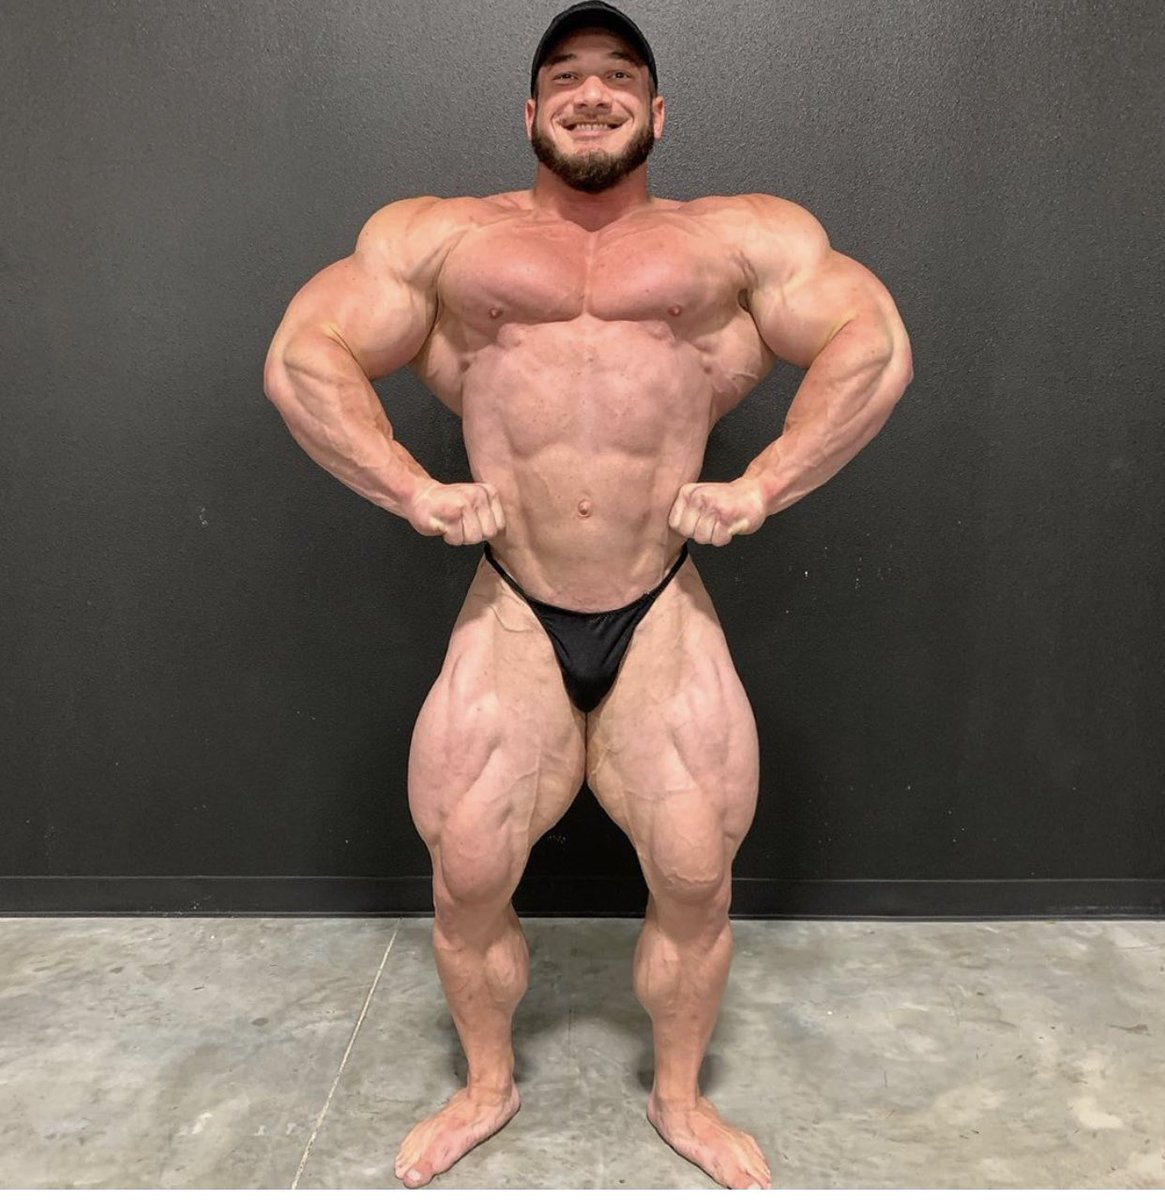 If you are a muscle worshipper and need to support  / sponsor Bodybuilders/ Models  with meetings / videos or used stuff DM me now. #bodybuilding #muscle #flexing #alpha #gorillamuscle #muscular #bros #posing #musclemotivation #bodybuildingmotivation #beastpic.twitter.com/em6o1RaXtn